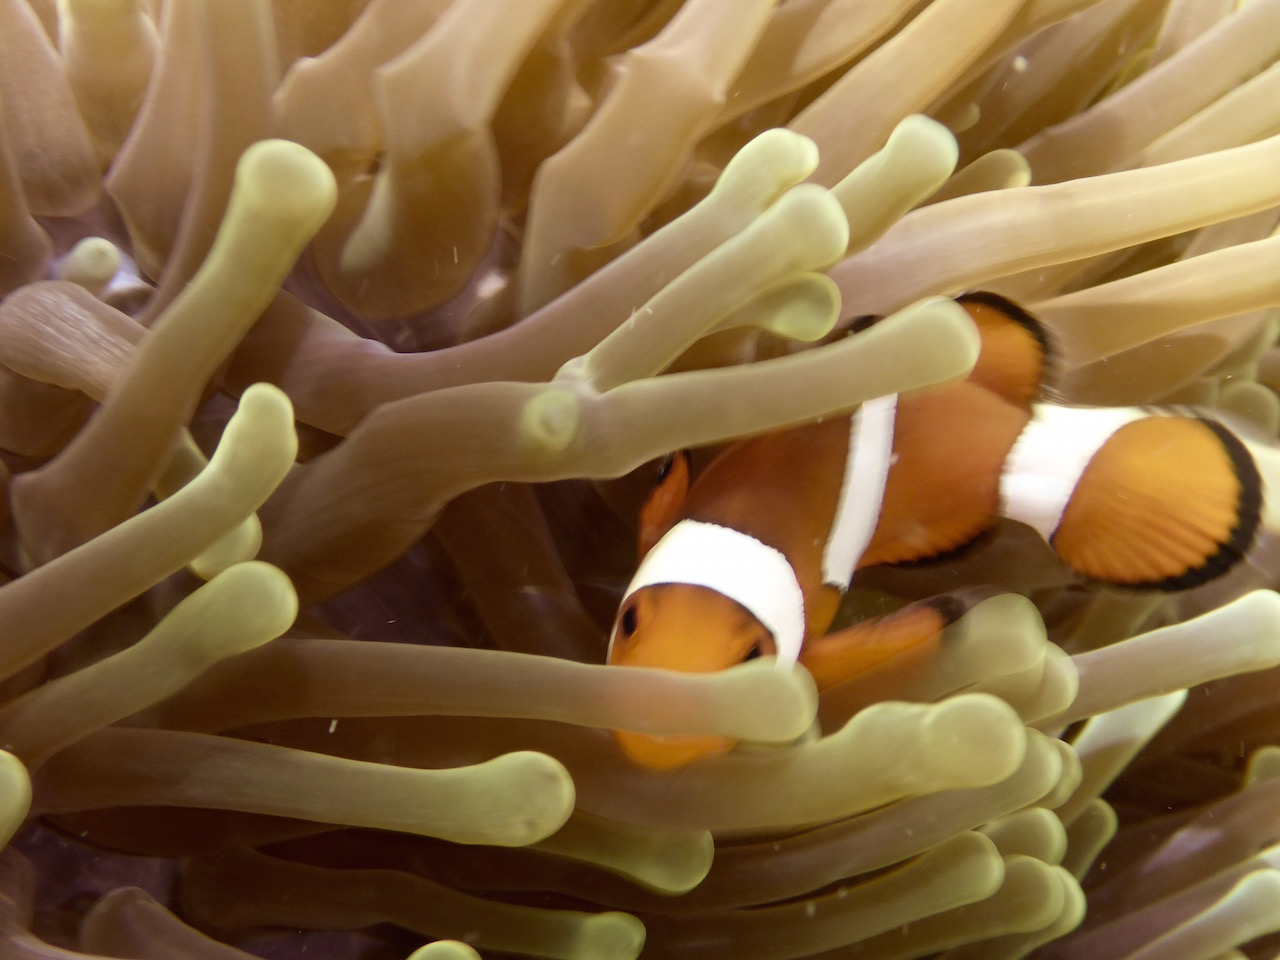 Clownfish and sea anemone. Photo: Vlademer Laloy